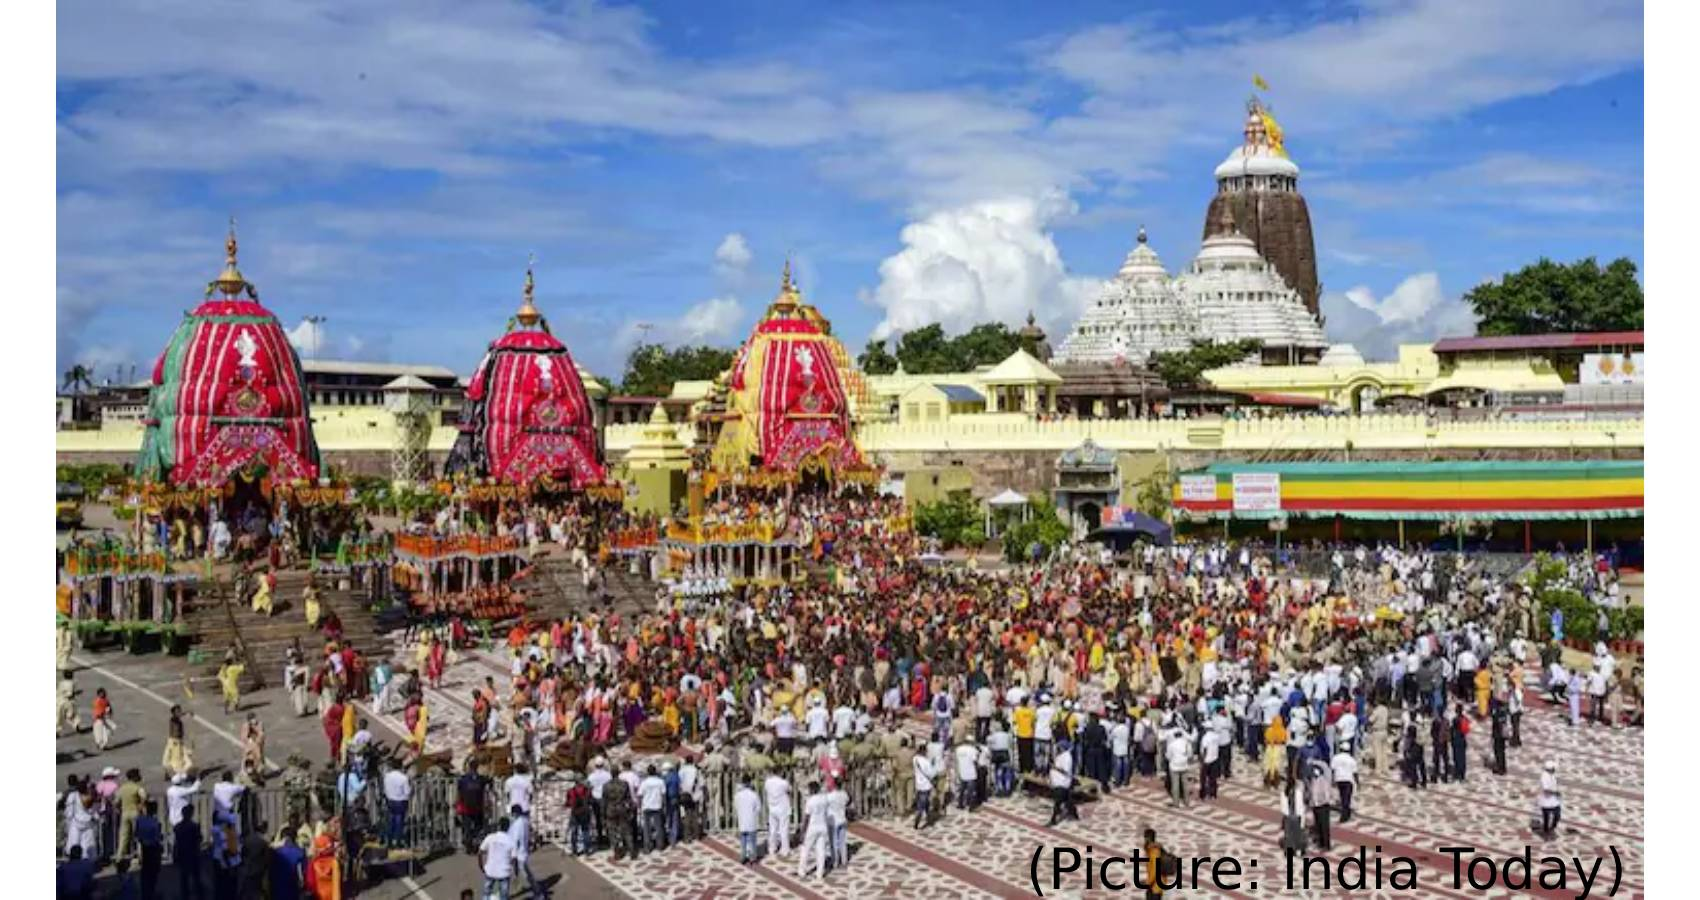 RathYatra, Celebrating Lord Jagannath's 'Unfinished Hands' At Puri Temple